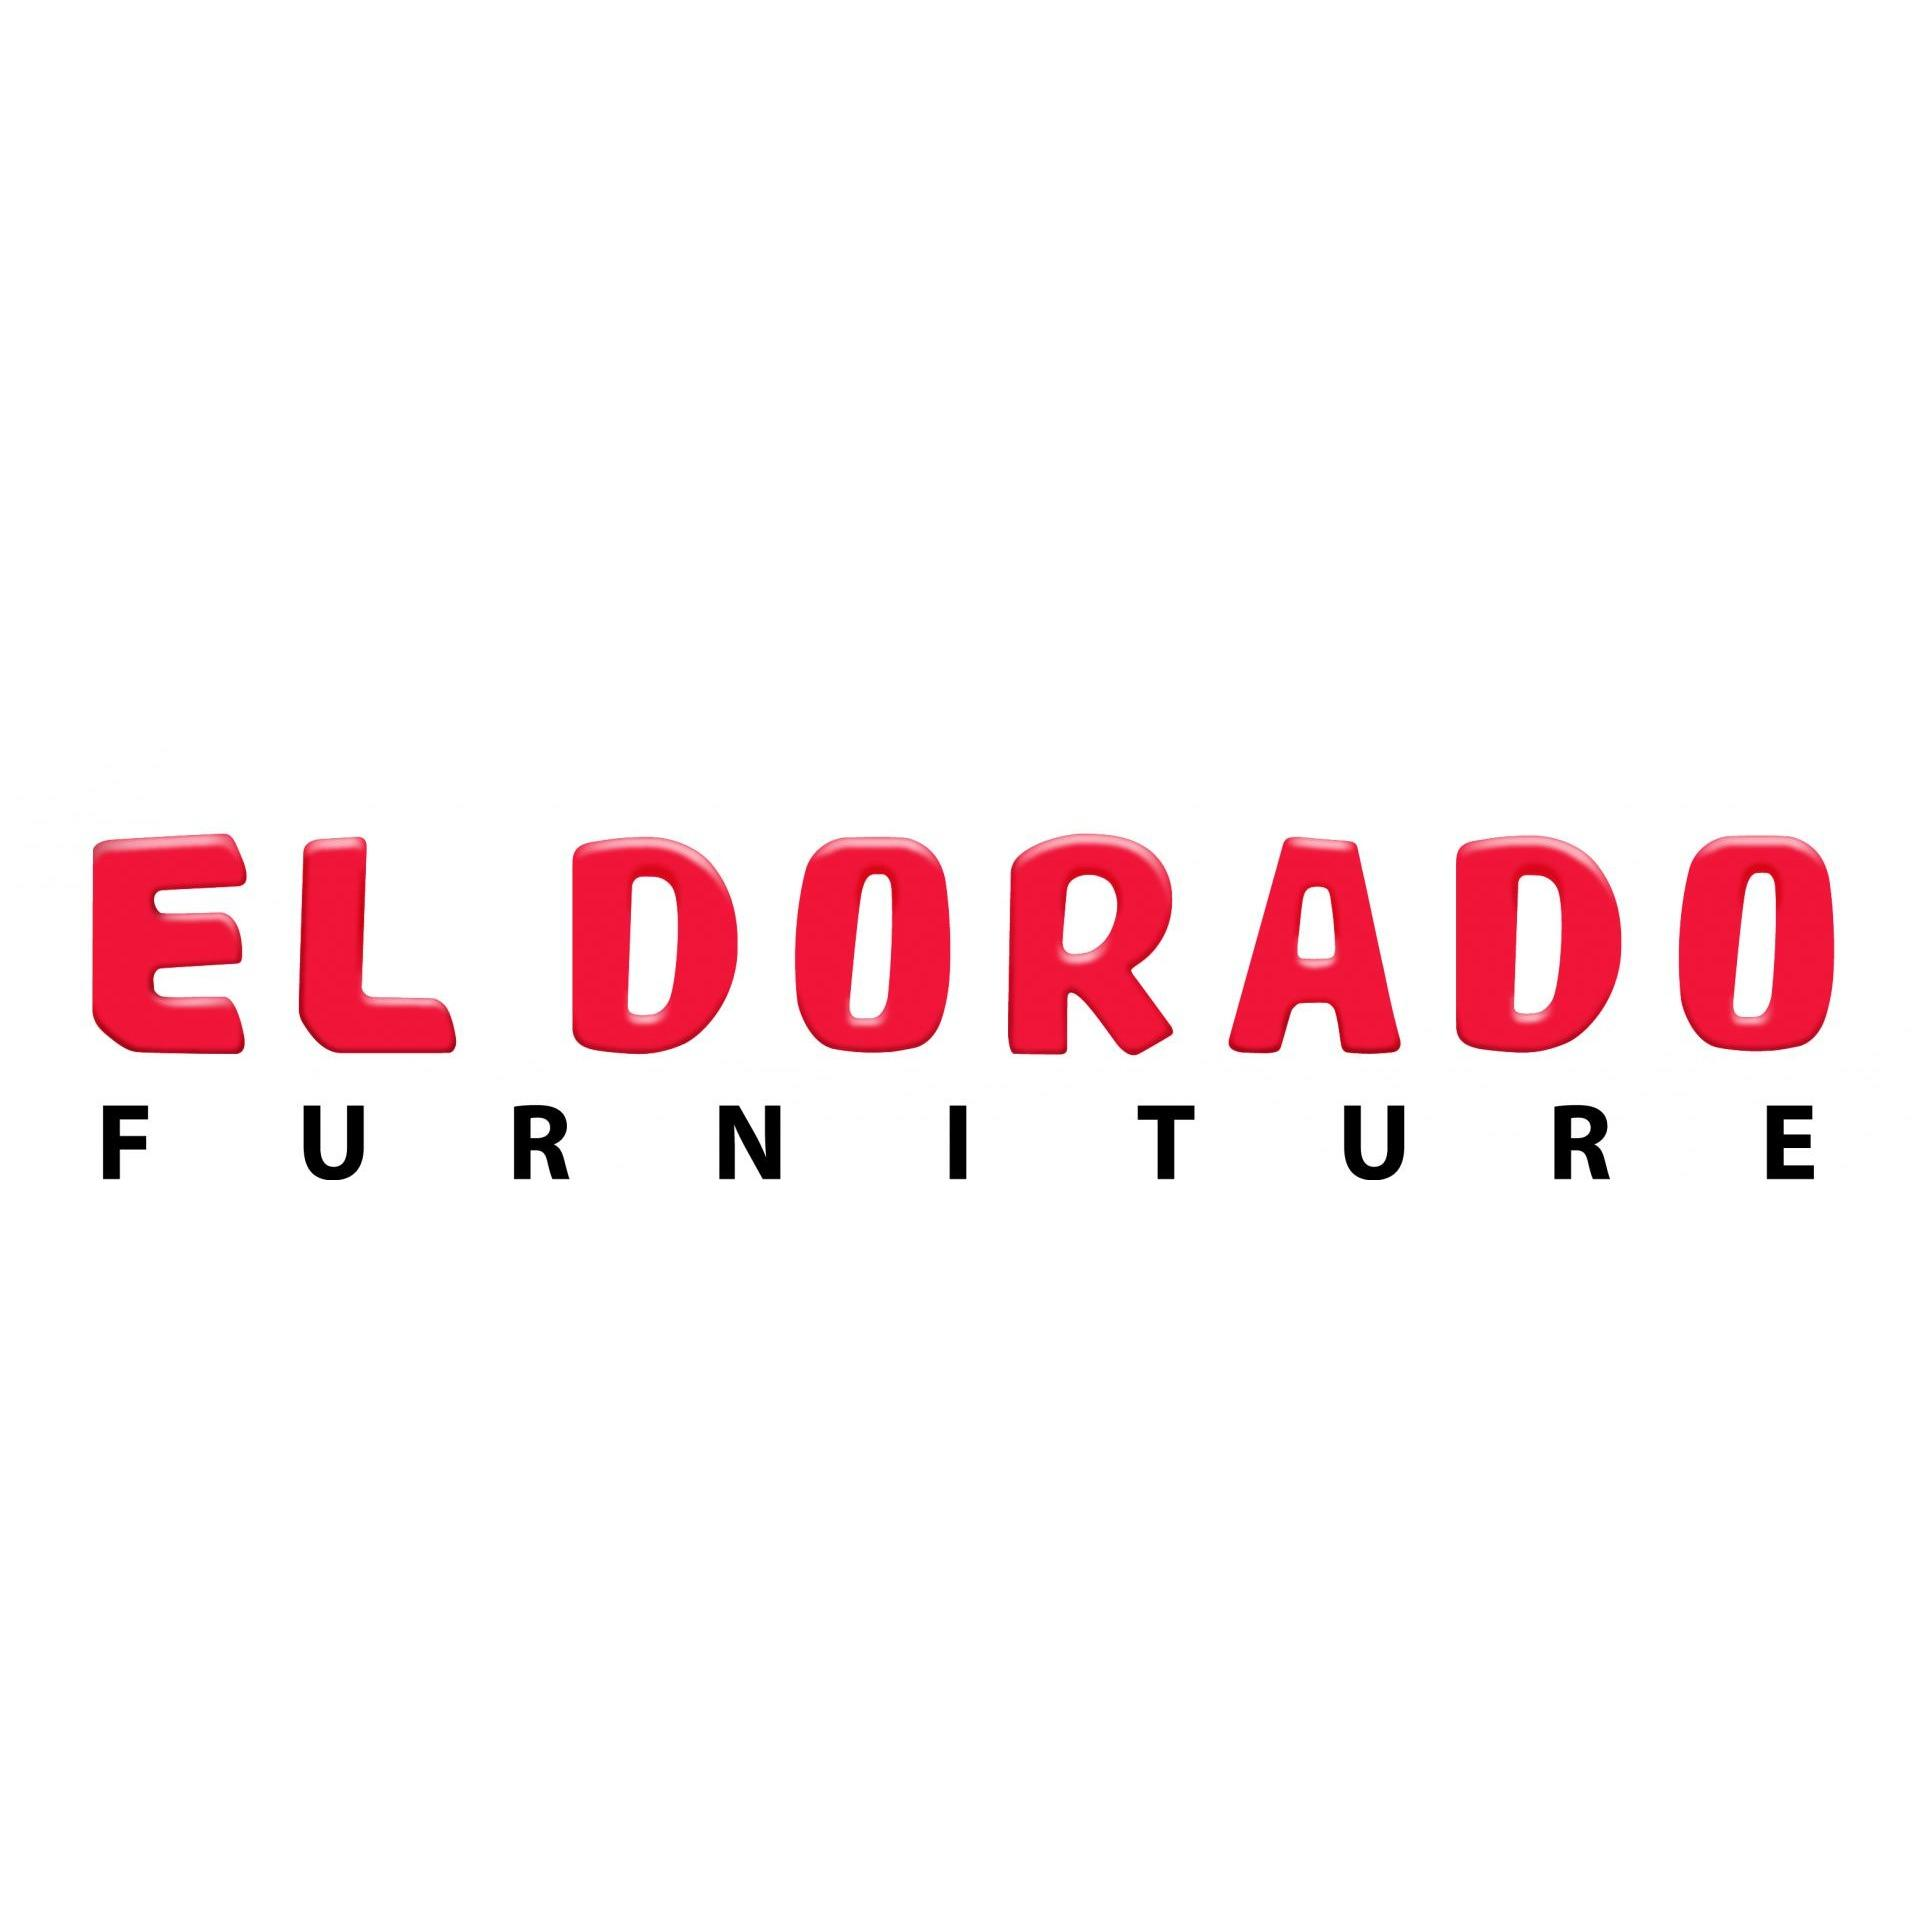 Furniture Stores Close To Me: Furniture Stores Near Me In Miami, Florida